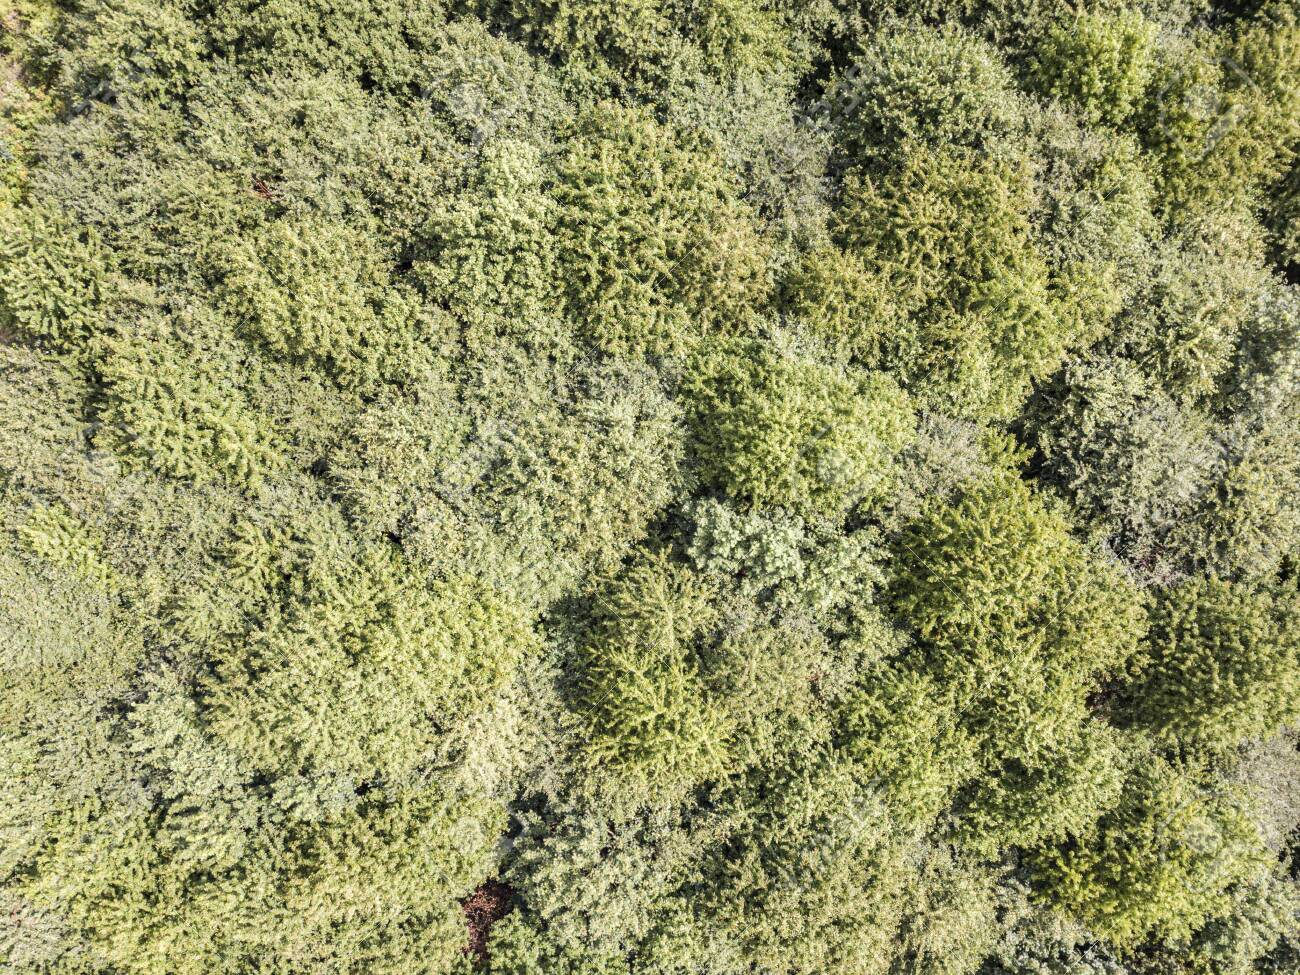 Tree tops seen from above, drone shot - 132455738